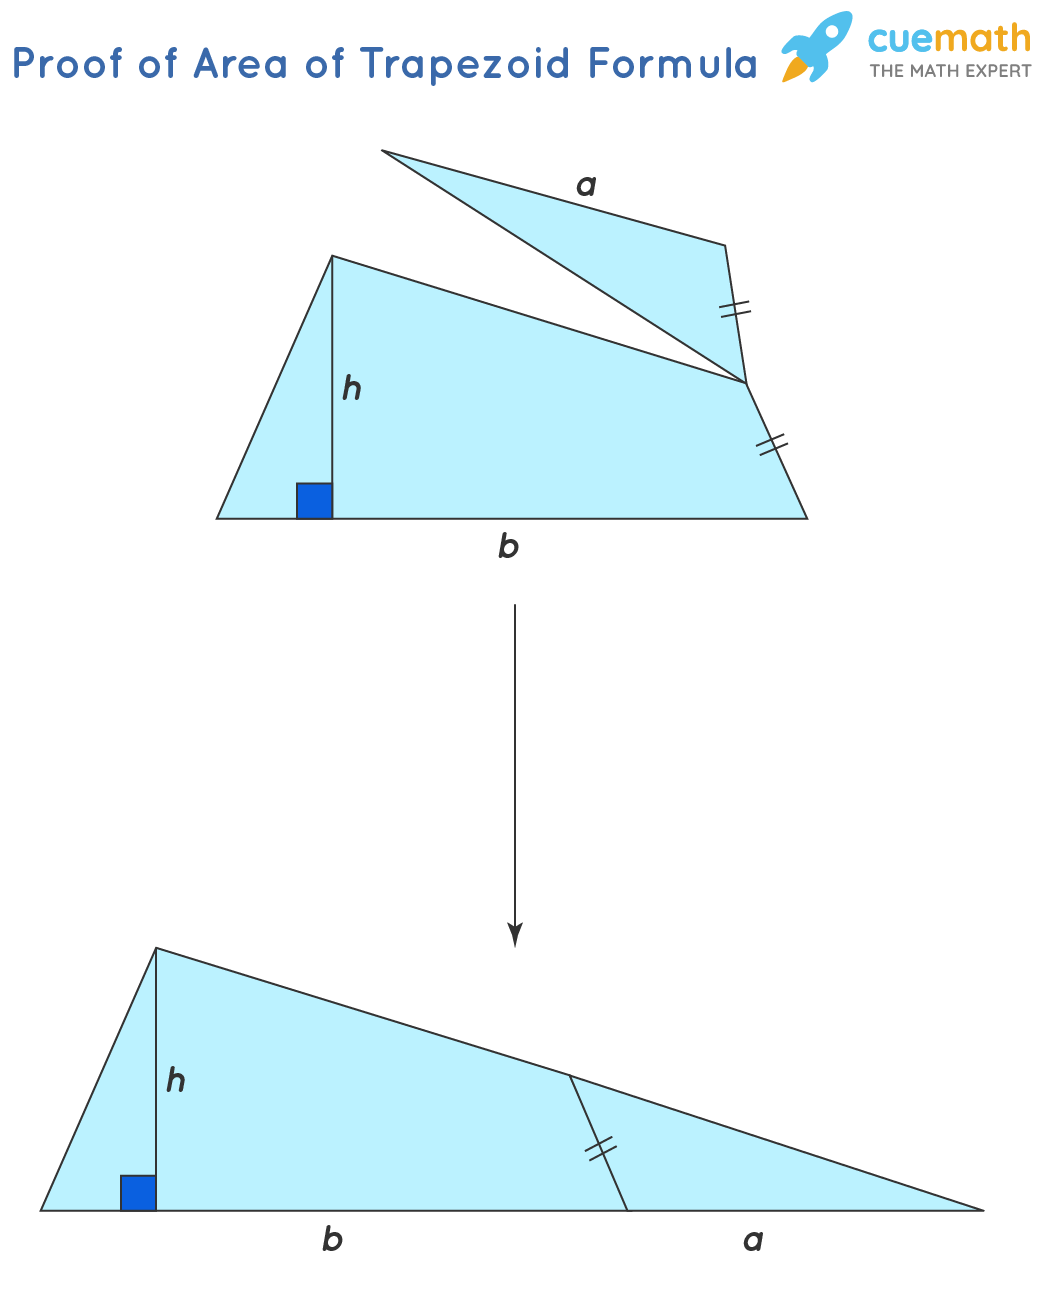 hight resolution of Area of Trapezoid - Formula